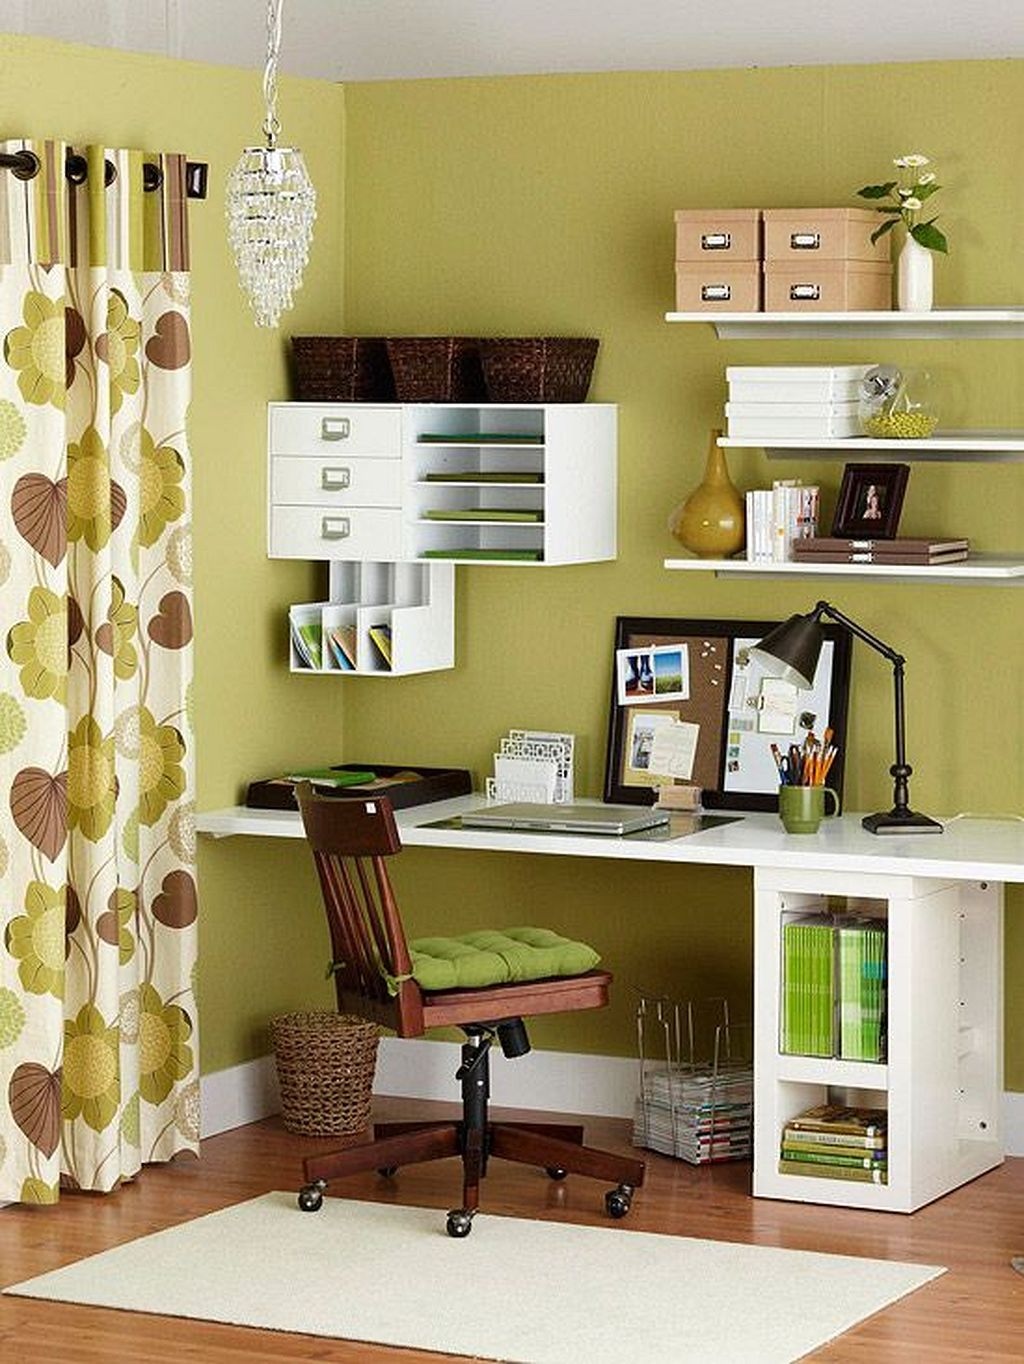 Luxury Office Wall Organization Ideas Pattern - Wall Art Collections ...